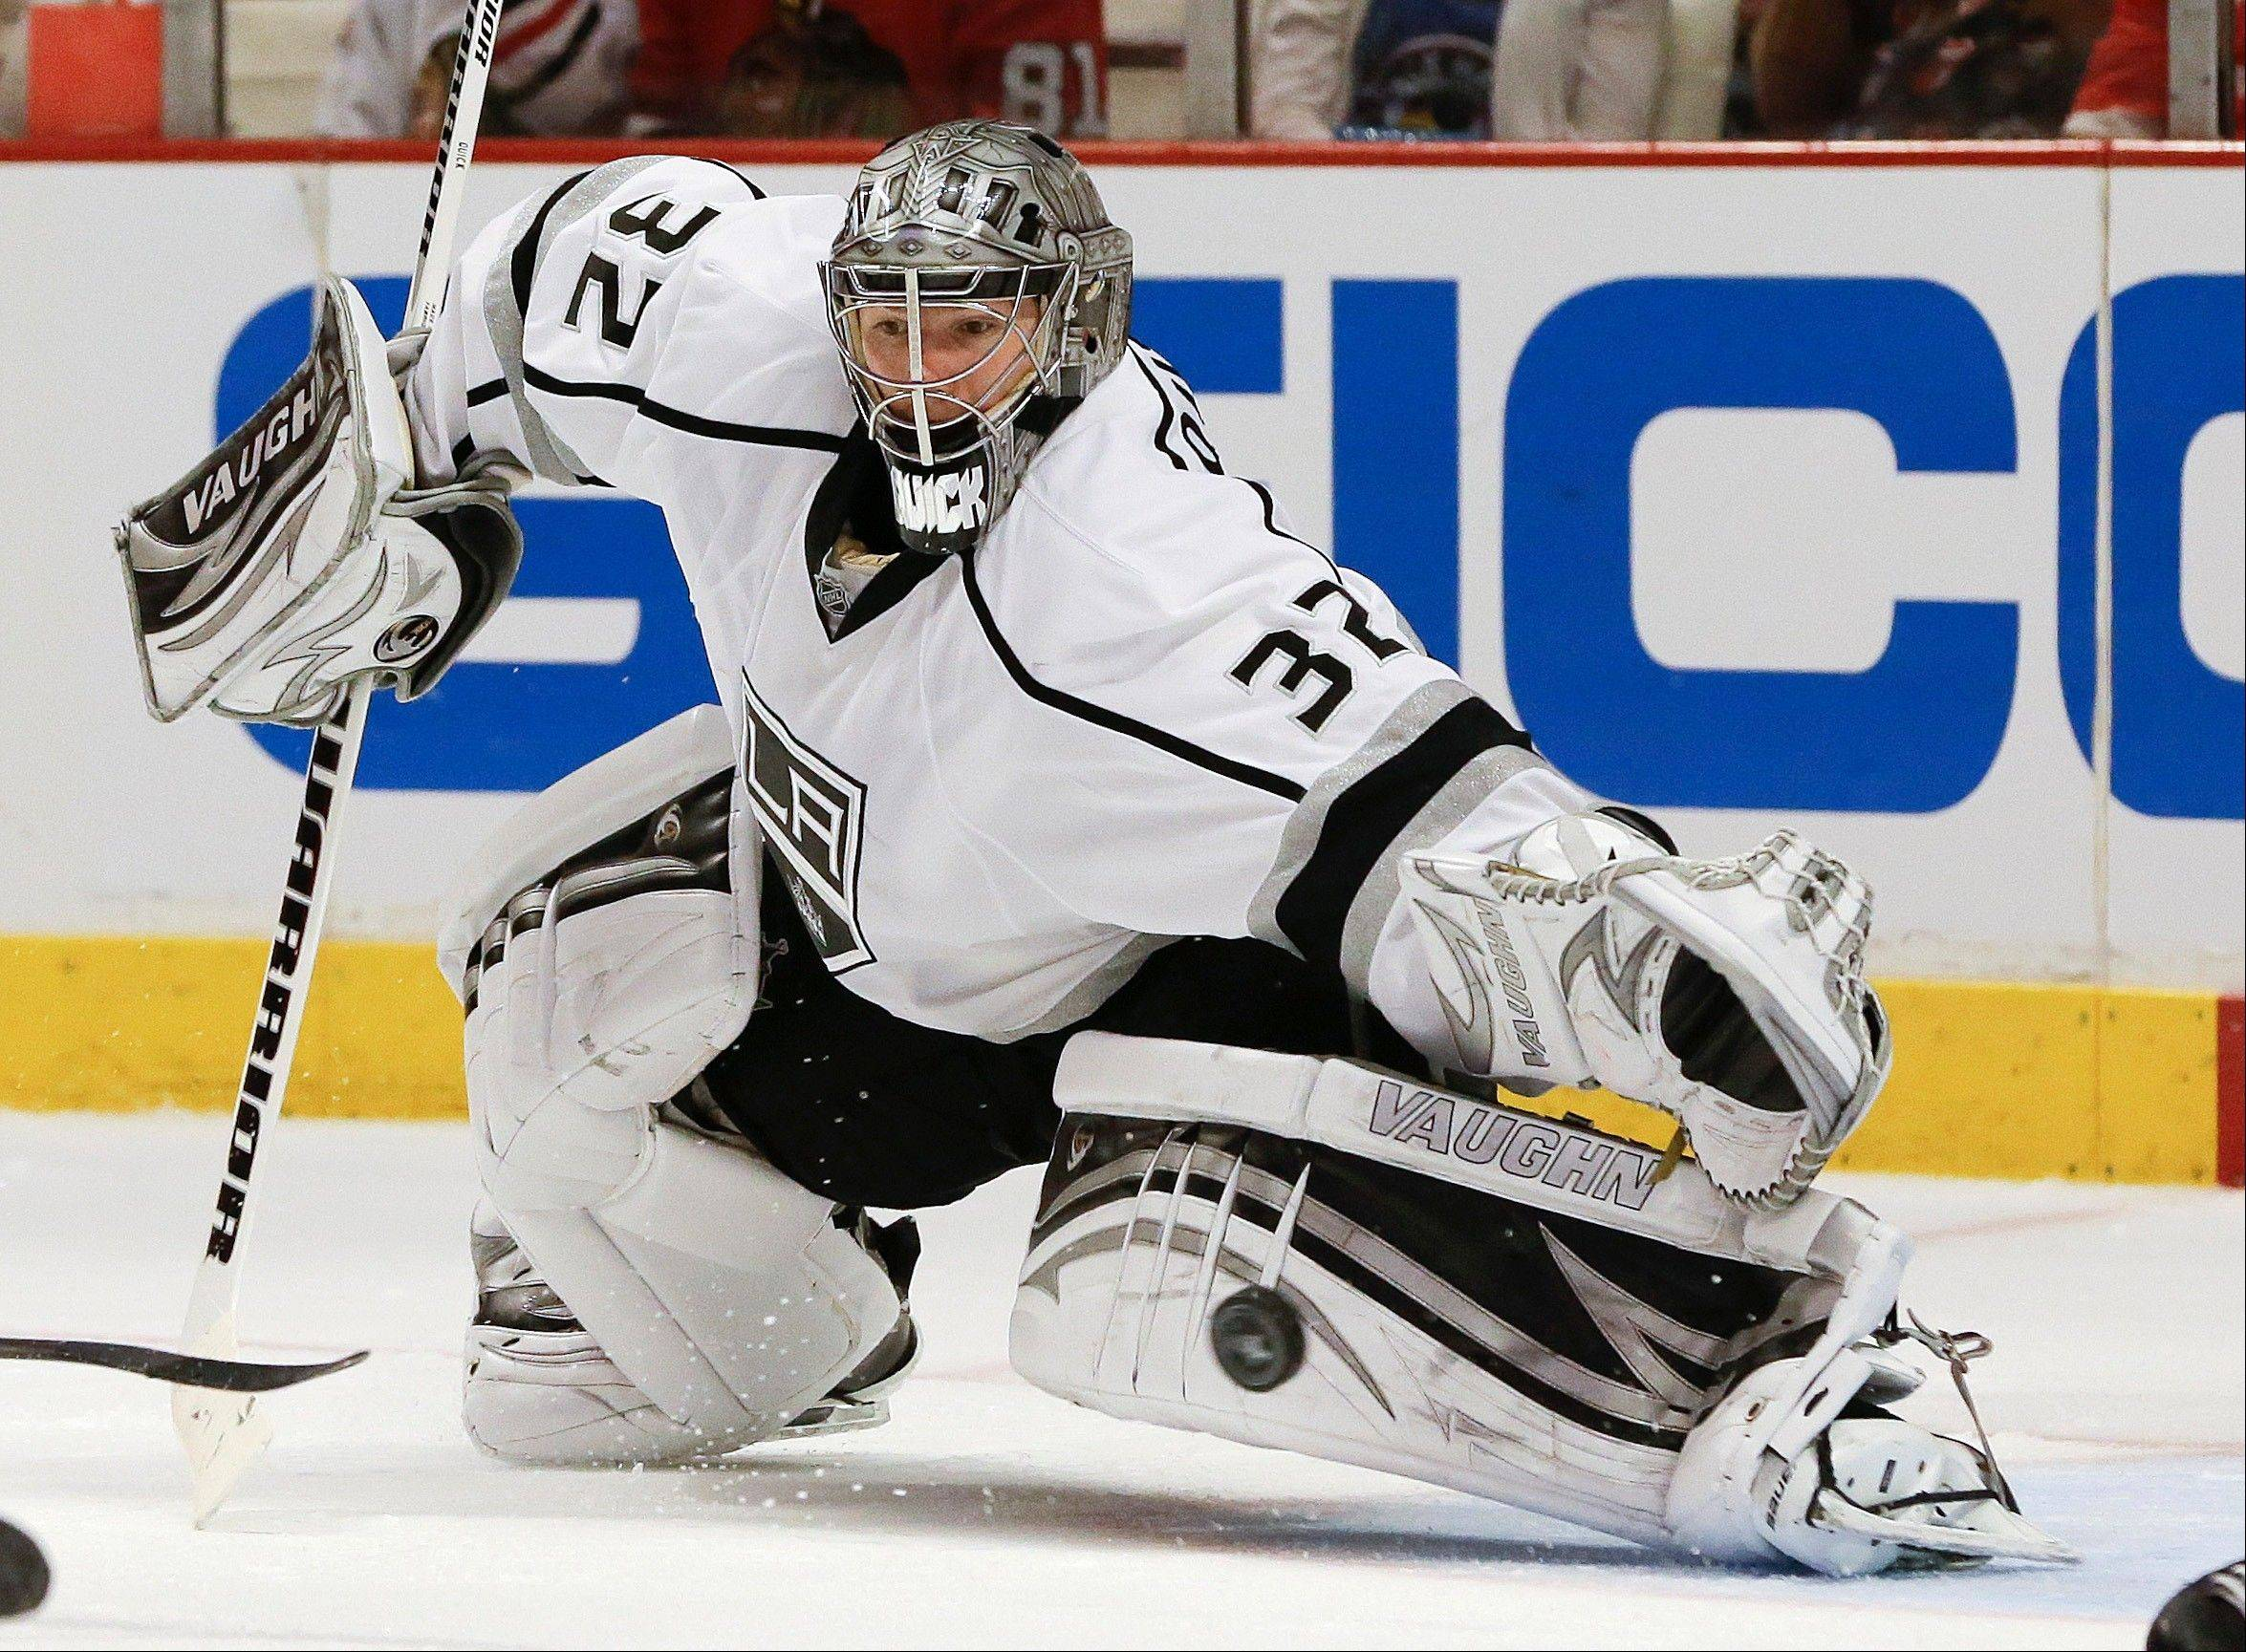 The puck gets by Los Angeles Kings goalie Jonathan Quick for a goal by Chicago Blackhawks center Patrick Sharp during the second period of Game 1 of the NHL hockey Stanley Cup Western Conference finals, Saturday, June 1, 2013,in Chicago.